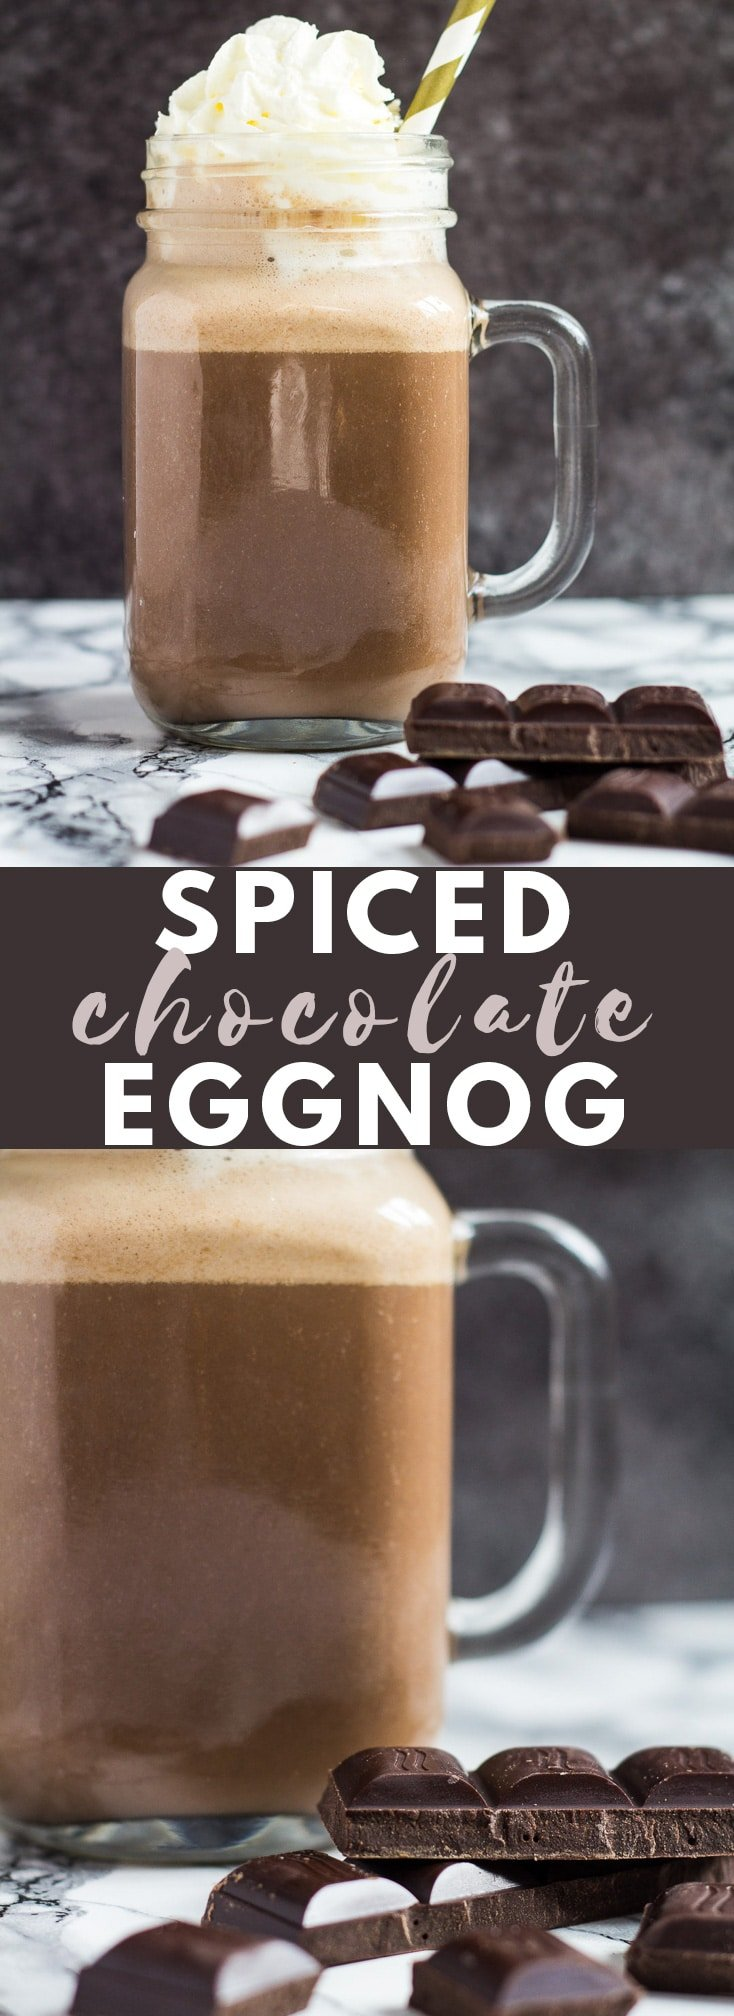 Spiced Chocolate Eggnog - Deliciously thick and creamy, perfectly spiced homemade eggnog that is loaded with chocolate flavour!